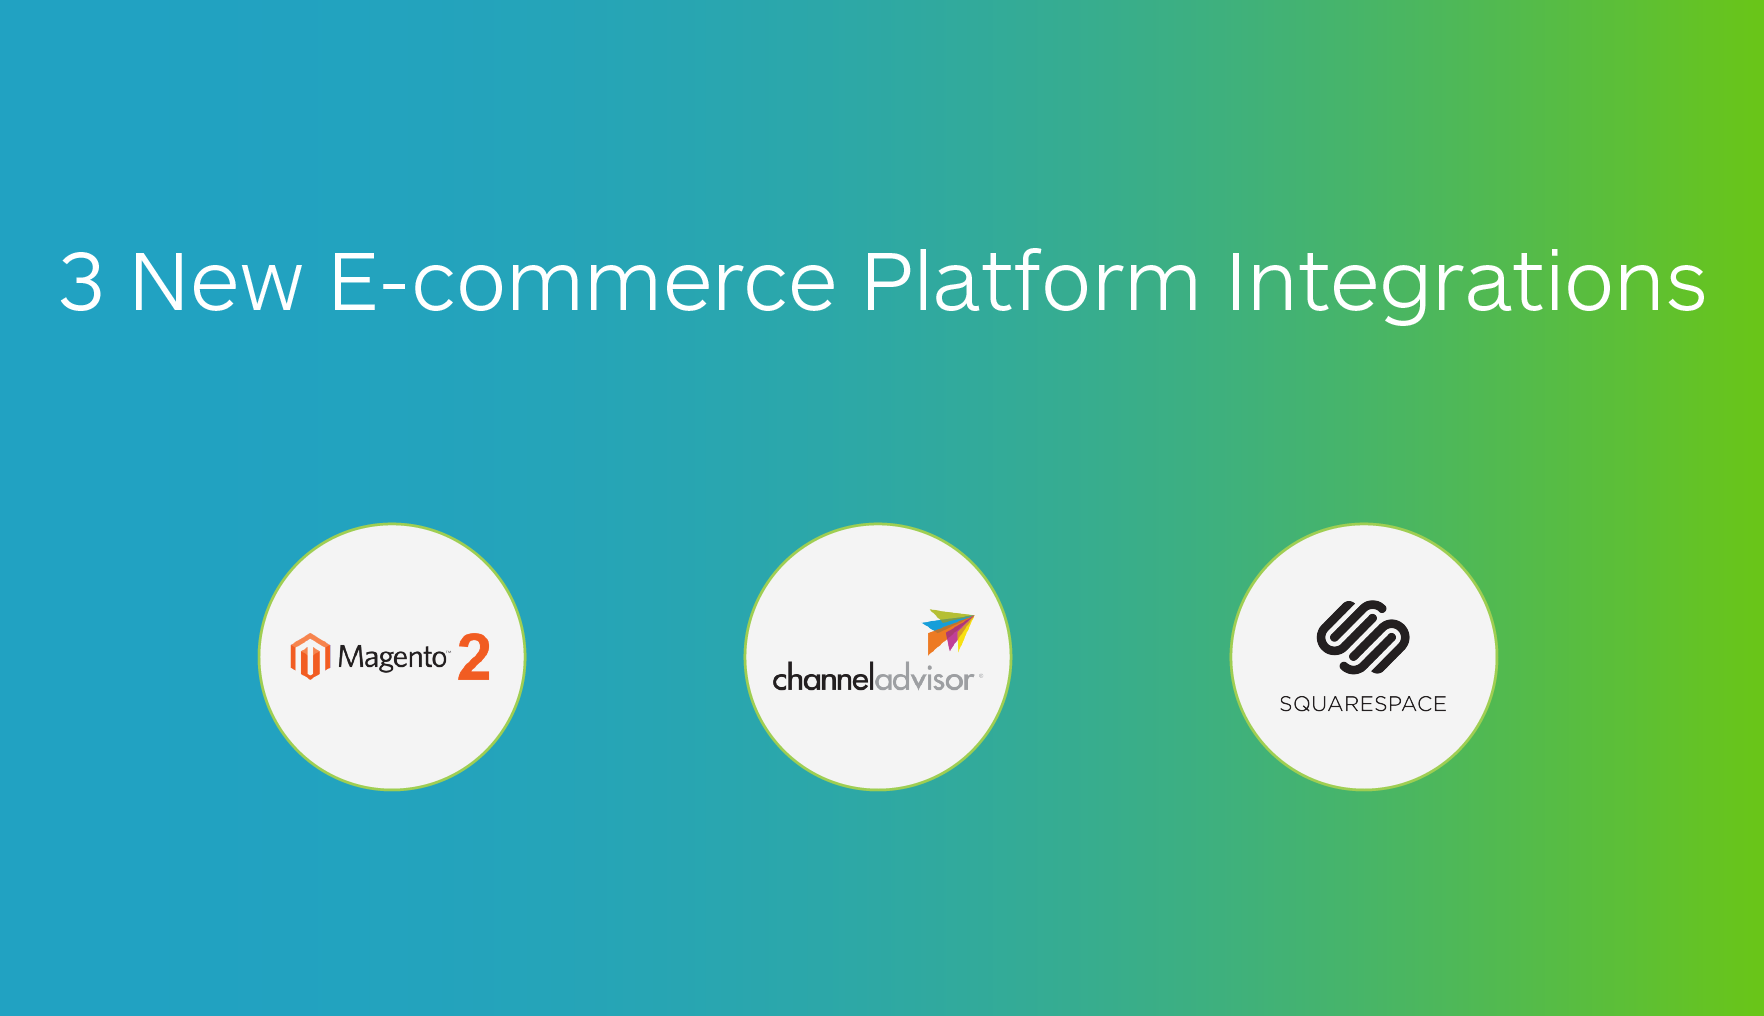 New Magento 2, ChannelAdvisor, and Squarespace Shipping Integrations